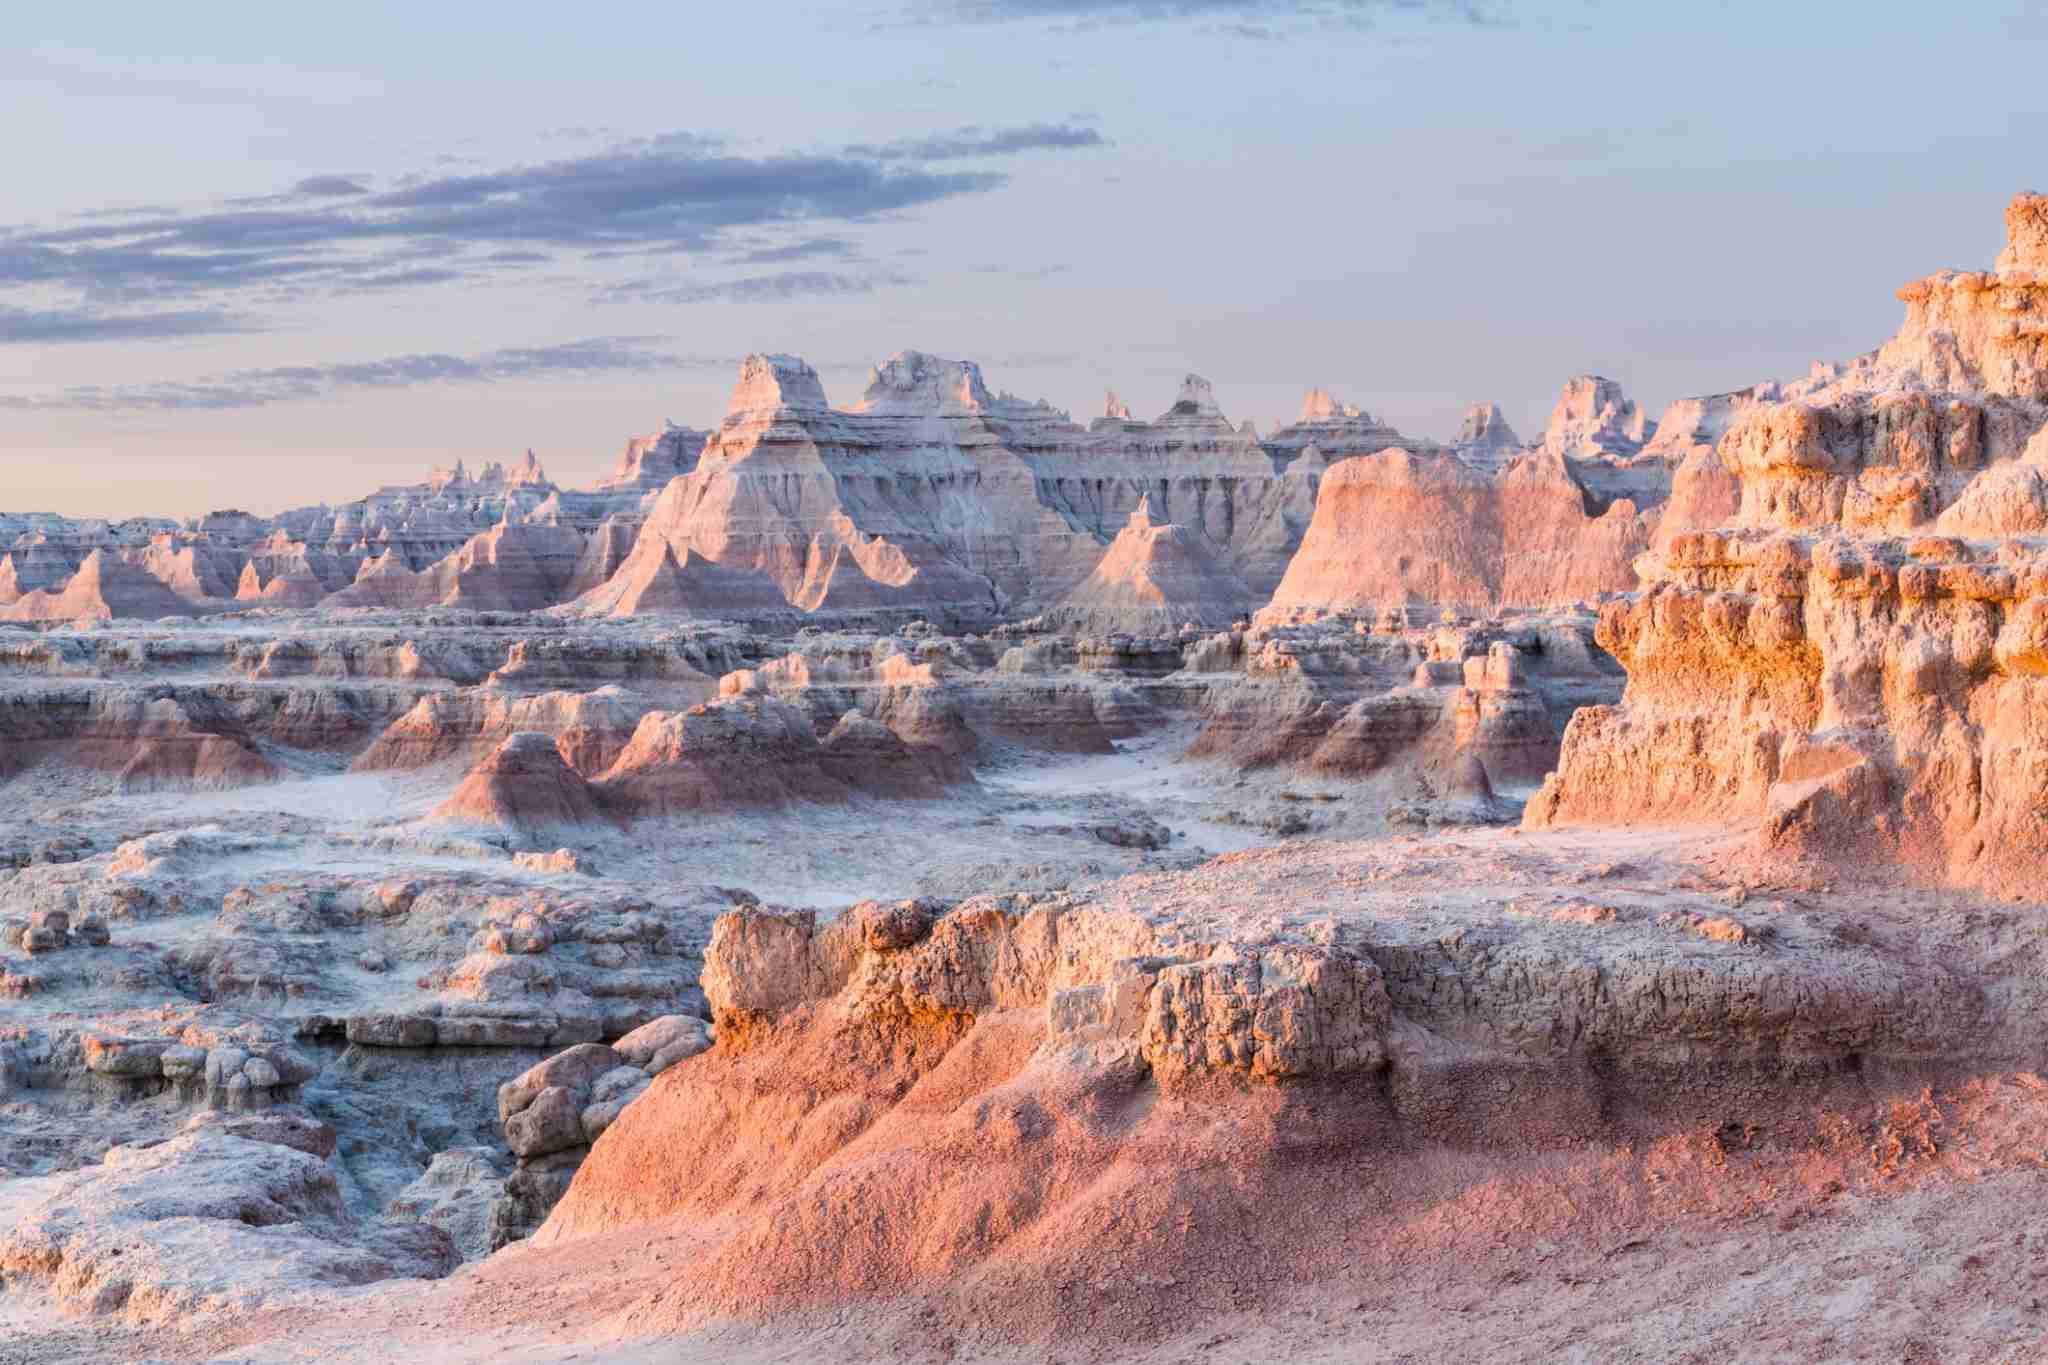 Early morning light on the Badlands.